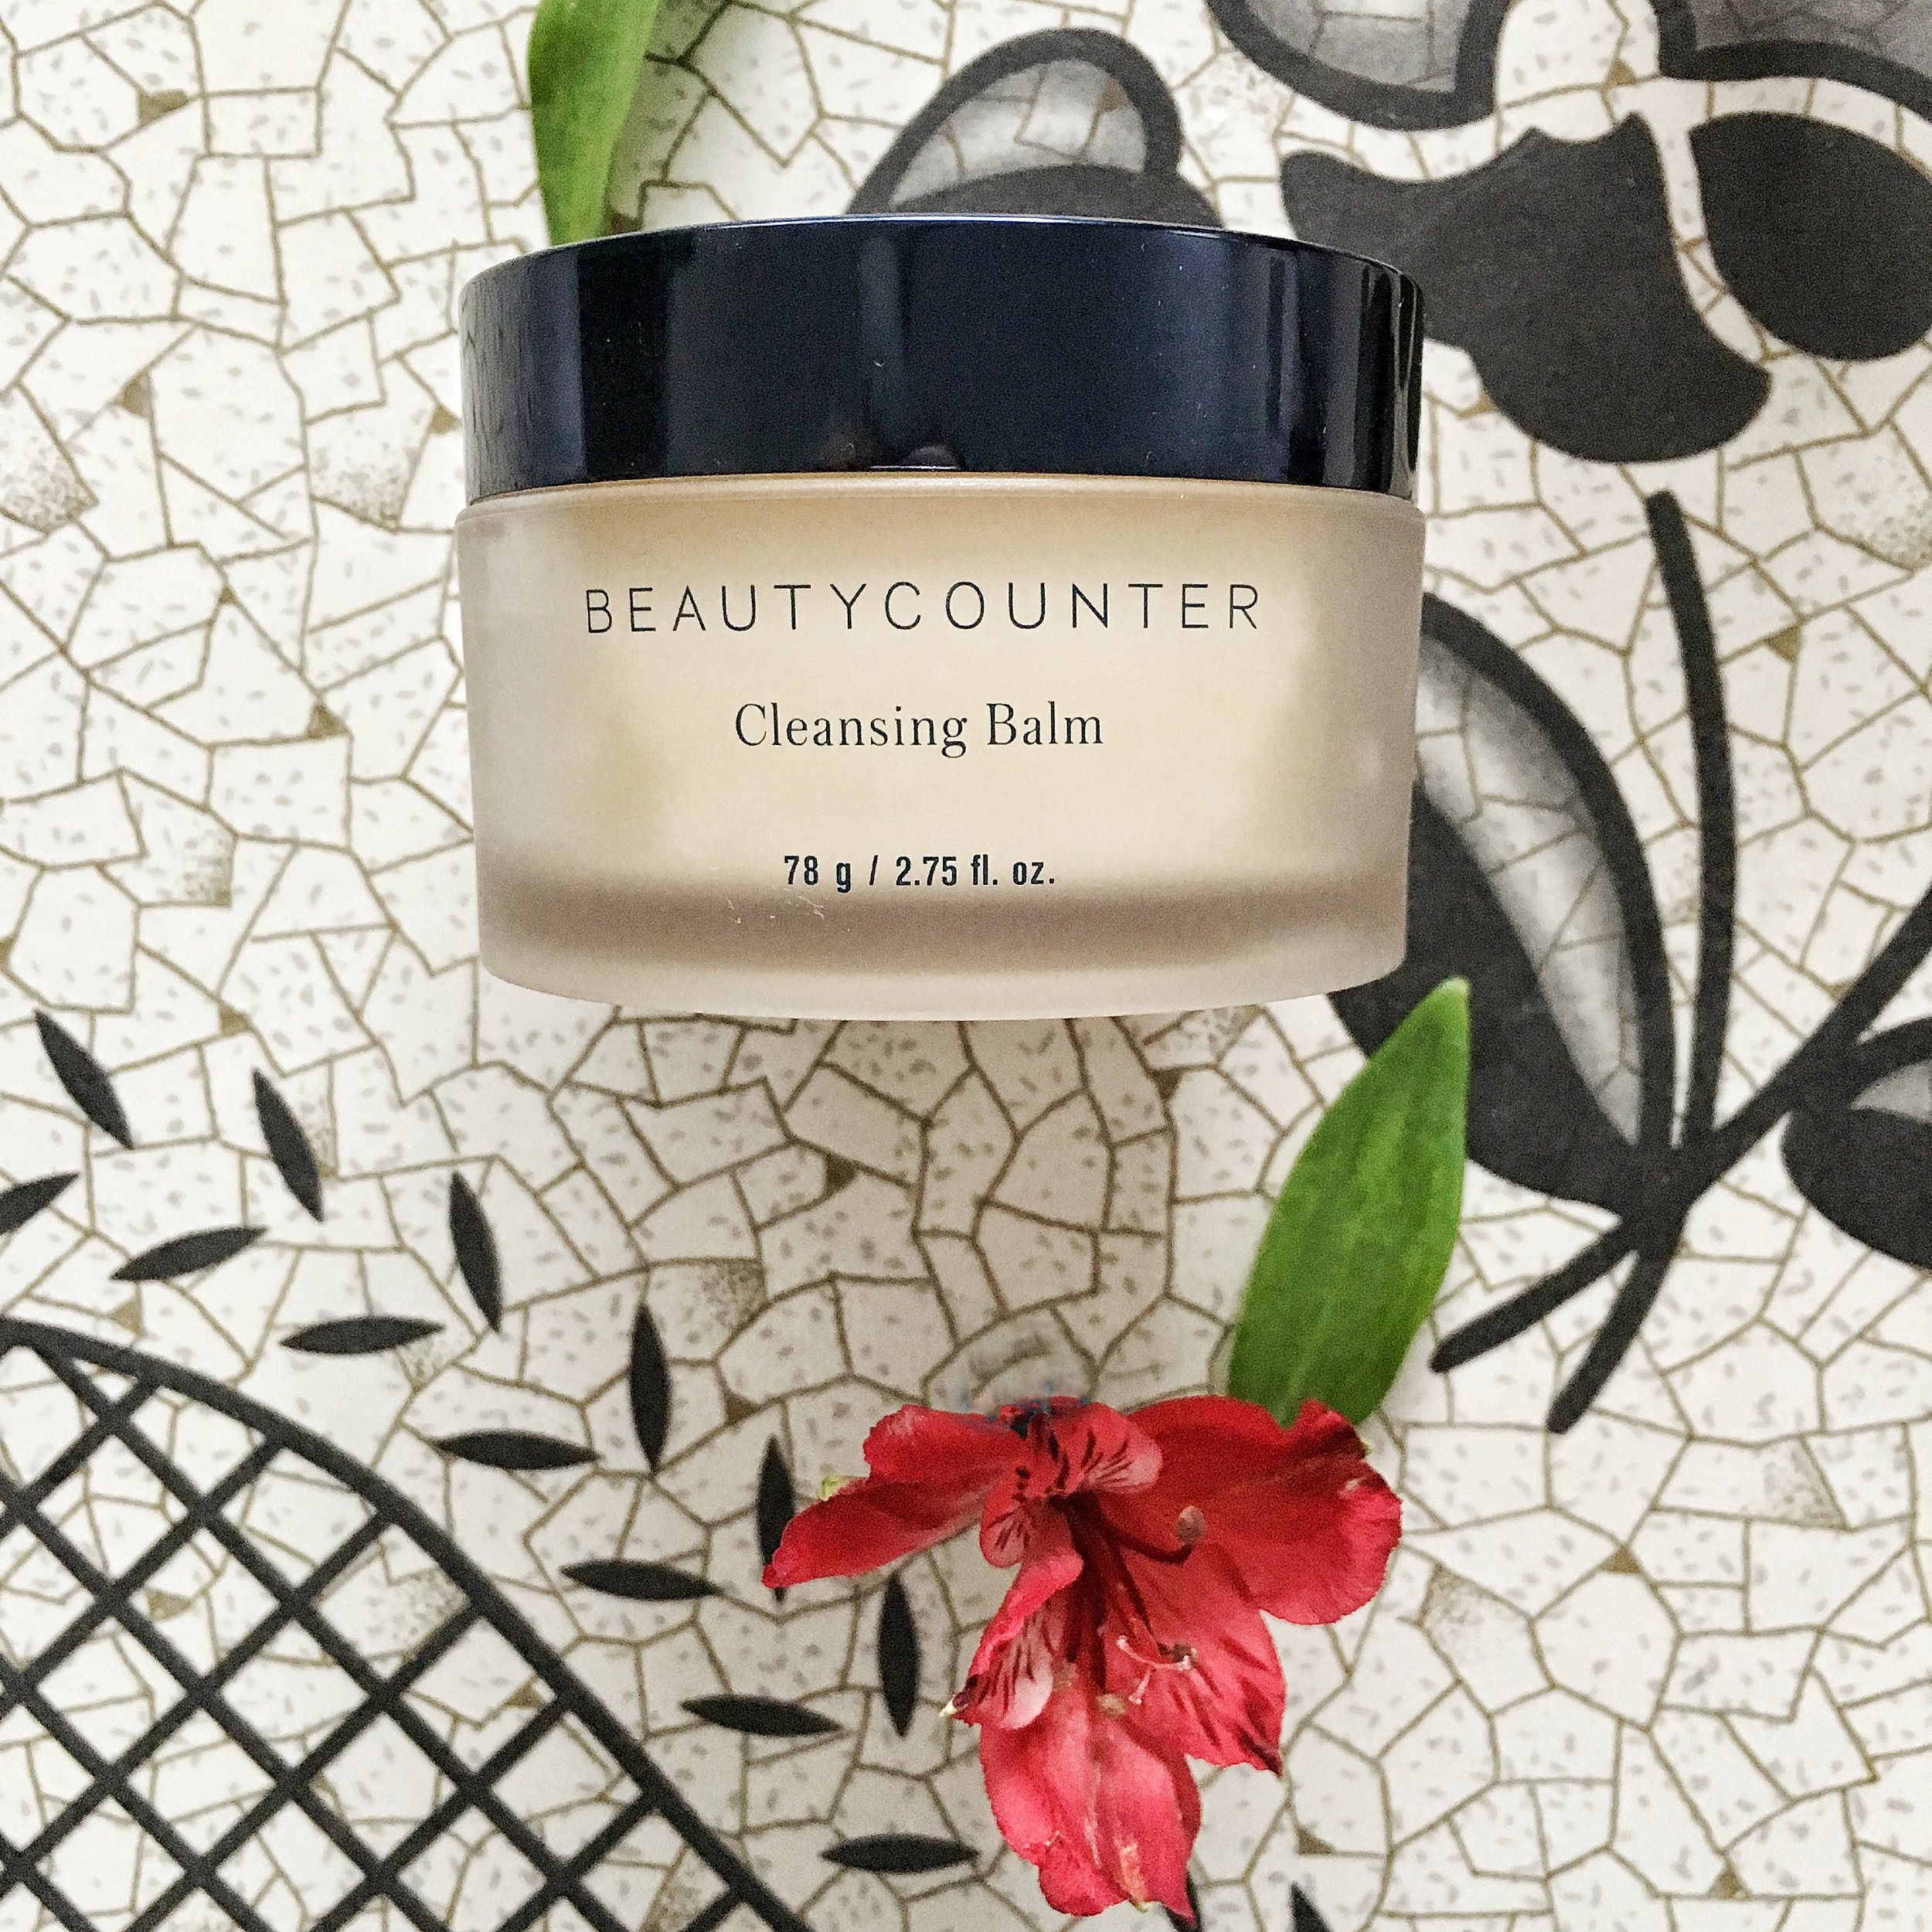 Cleansing Balm - I call Cleansing Balm Beautycounter's #1 multi-tasking product. Why? It's one product with over 10 uses! Cleansing Balm can be used as a face wash, makeup remover, overnight mask, or as a treatment for rosacea, acne, eczema, burns, stretch marks, dry knuckles/cuticles/heels, and as a preventative for wind burn. It's able to do all these things because it's formulated with vitamin C to brighten, cranberry and raspberry seed oils to hydrate, and mango seed butter for even more hydration. All you have to do is massage an almond-sized amount into dry skin. To remove (if you're using it as a face wash or makeup remover), dampen the included 100% muslin reusable cloth with warm water and gently wipe off balm in upward strokes.  ($94 CAD/$80 USD)